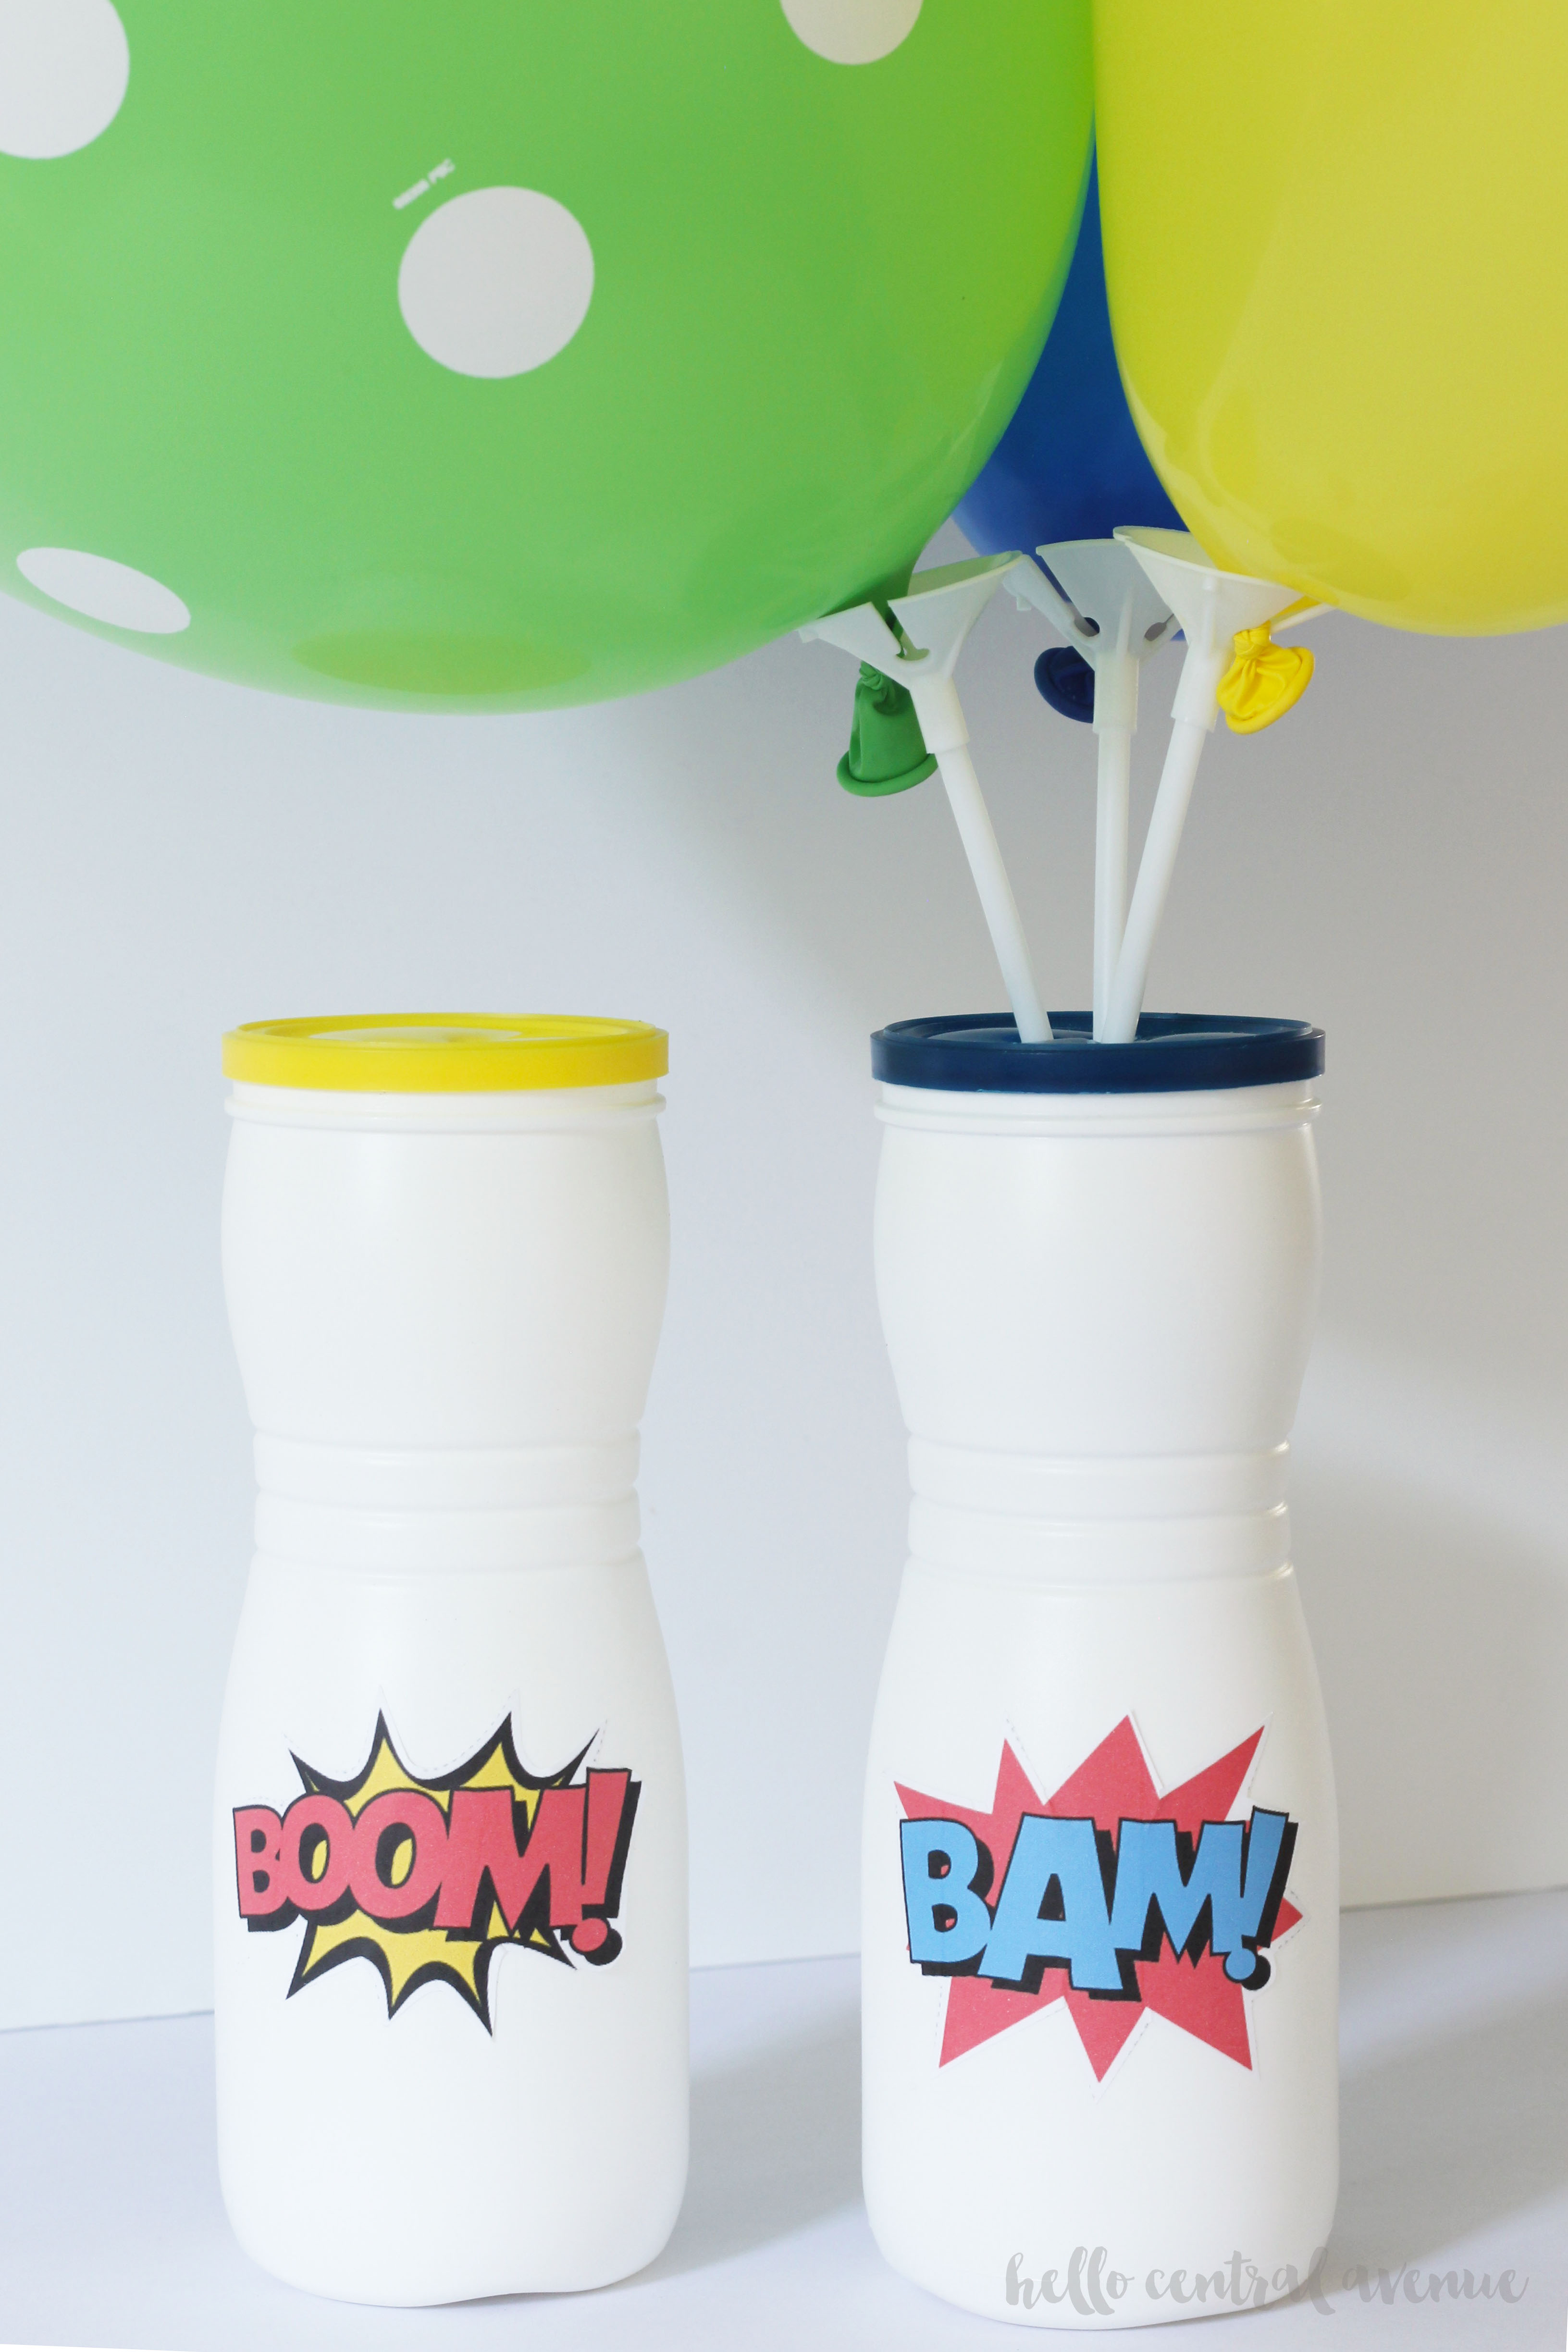 Here is an easy diy centerpiece made of balloons and baby puff containers. It's such an easy and cheap centerpiece!